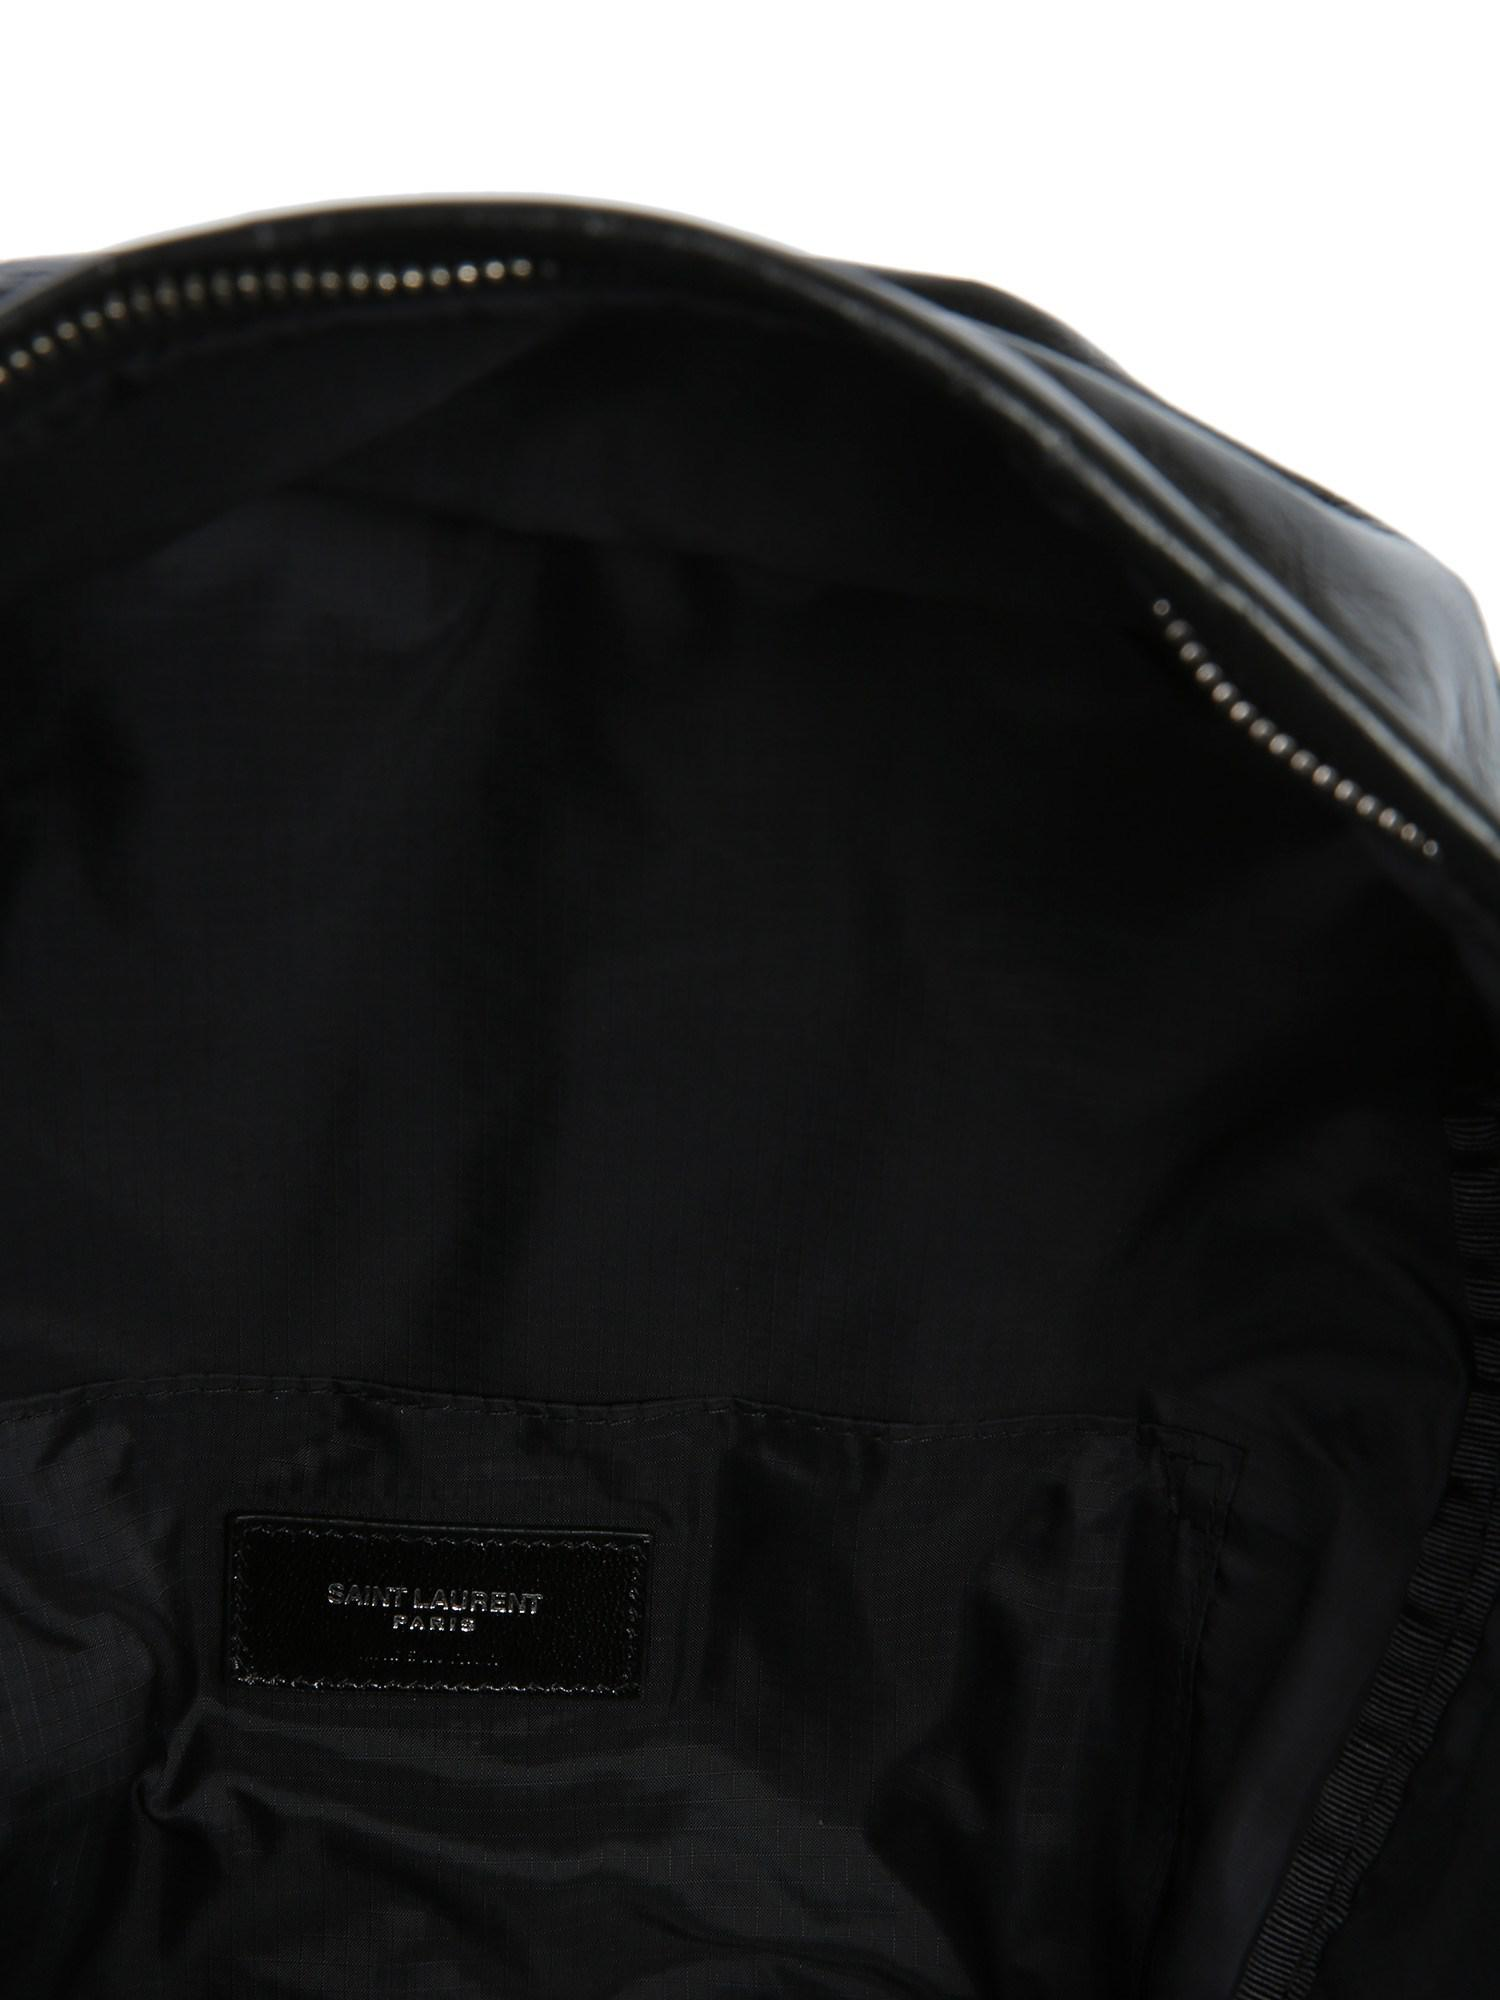 7f2fb8d4dfcb Lyst - Saint Laurent Foldable Leather City Backpack in Black